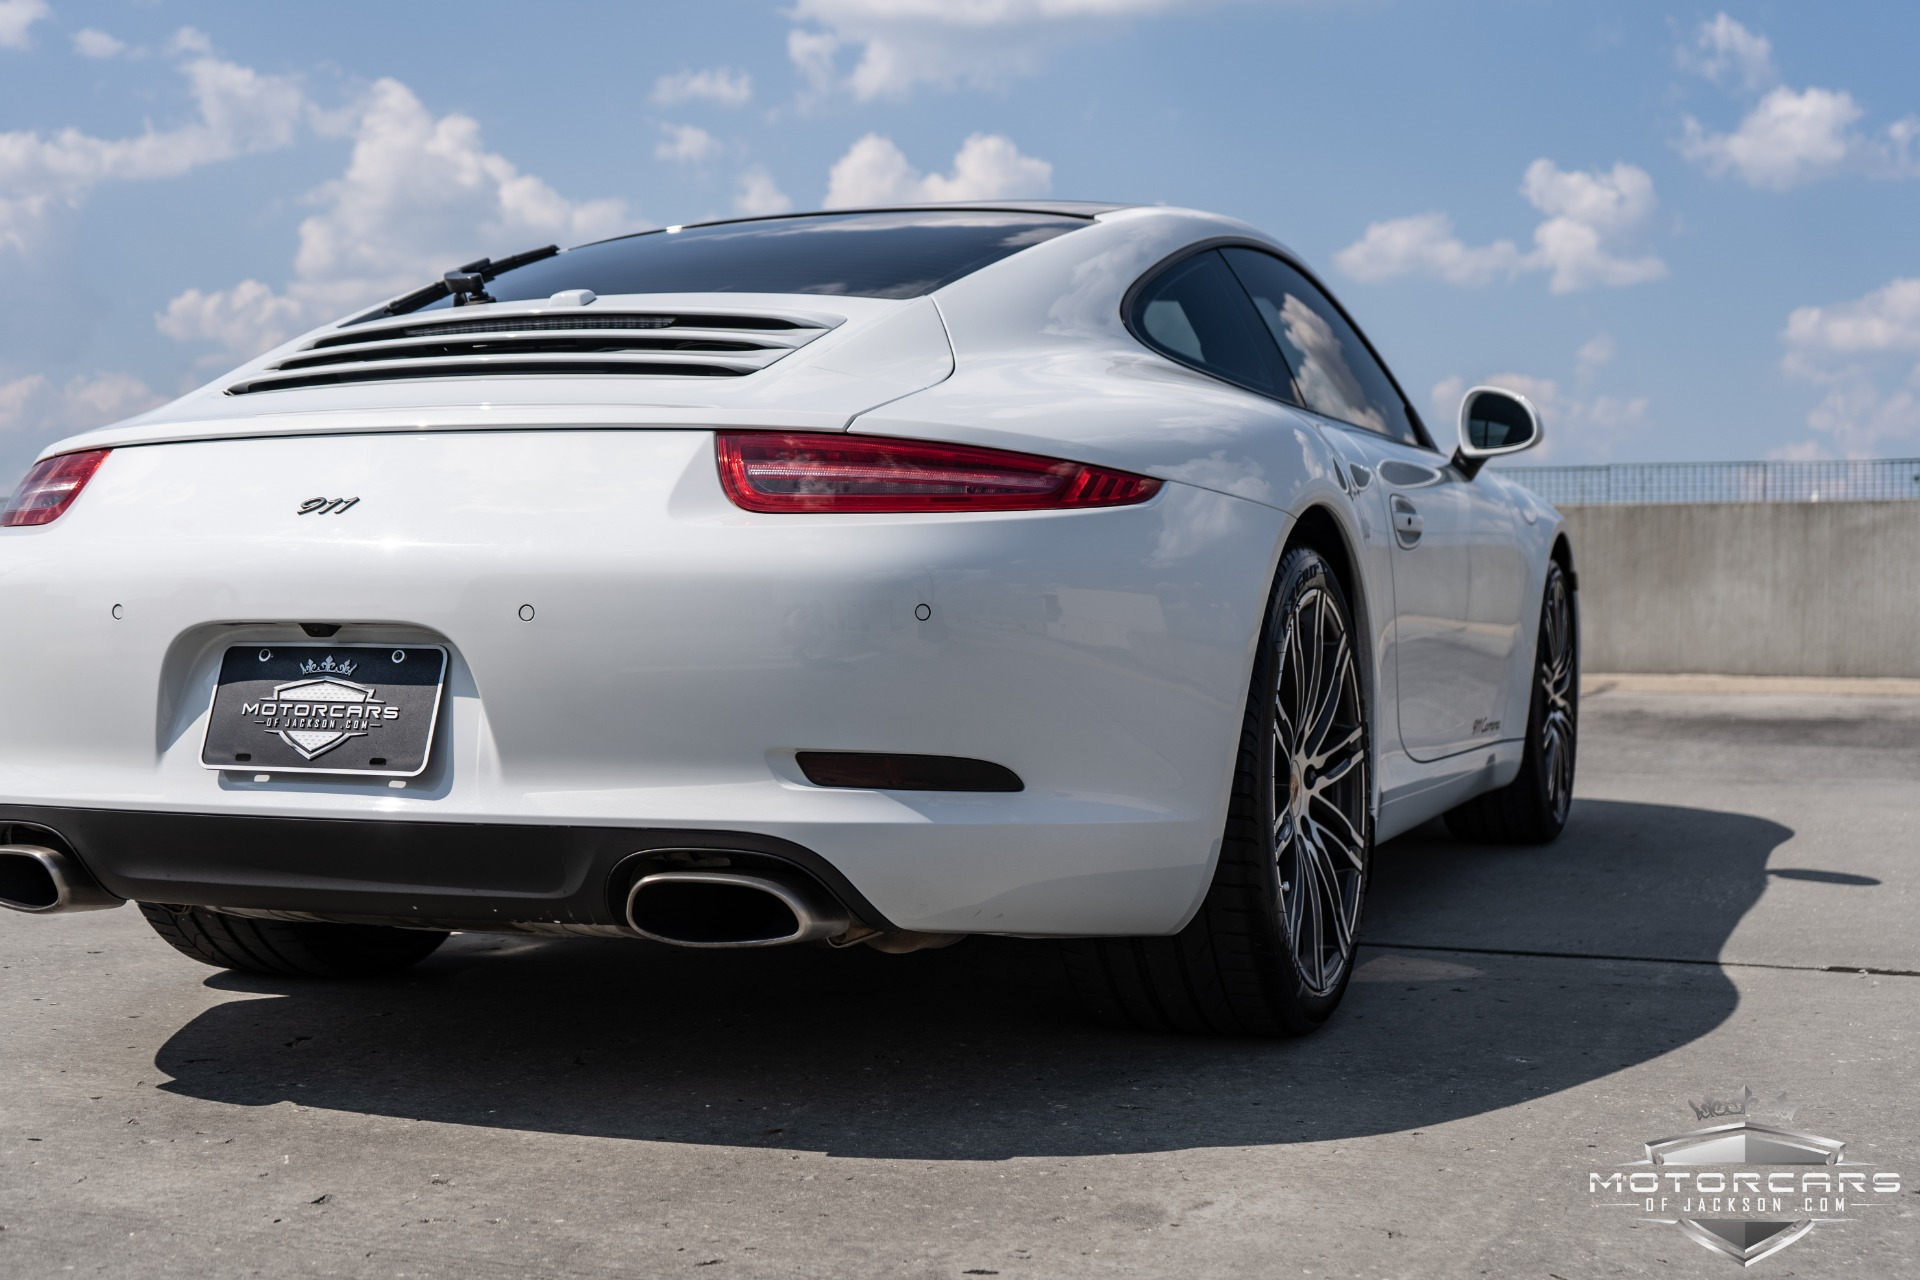 Used-2016-Porsche-911-Carrera-for-sale-Jackson-MS